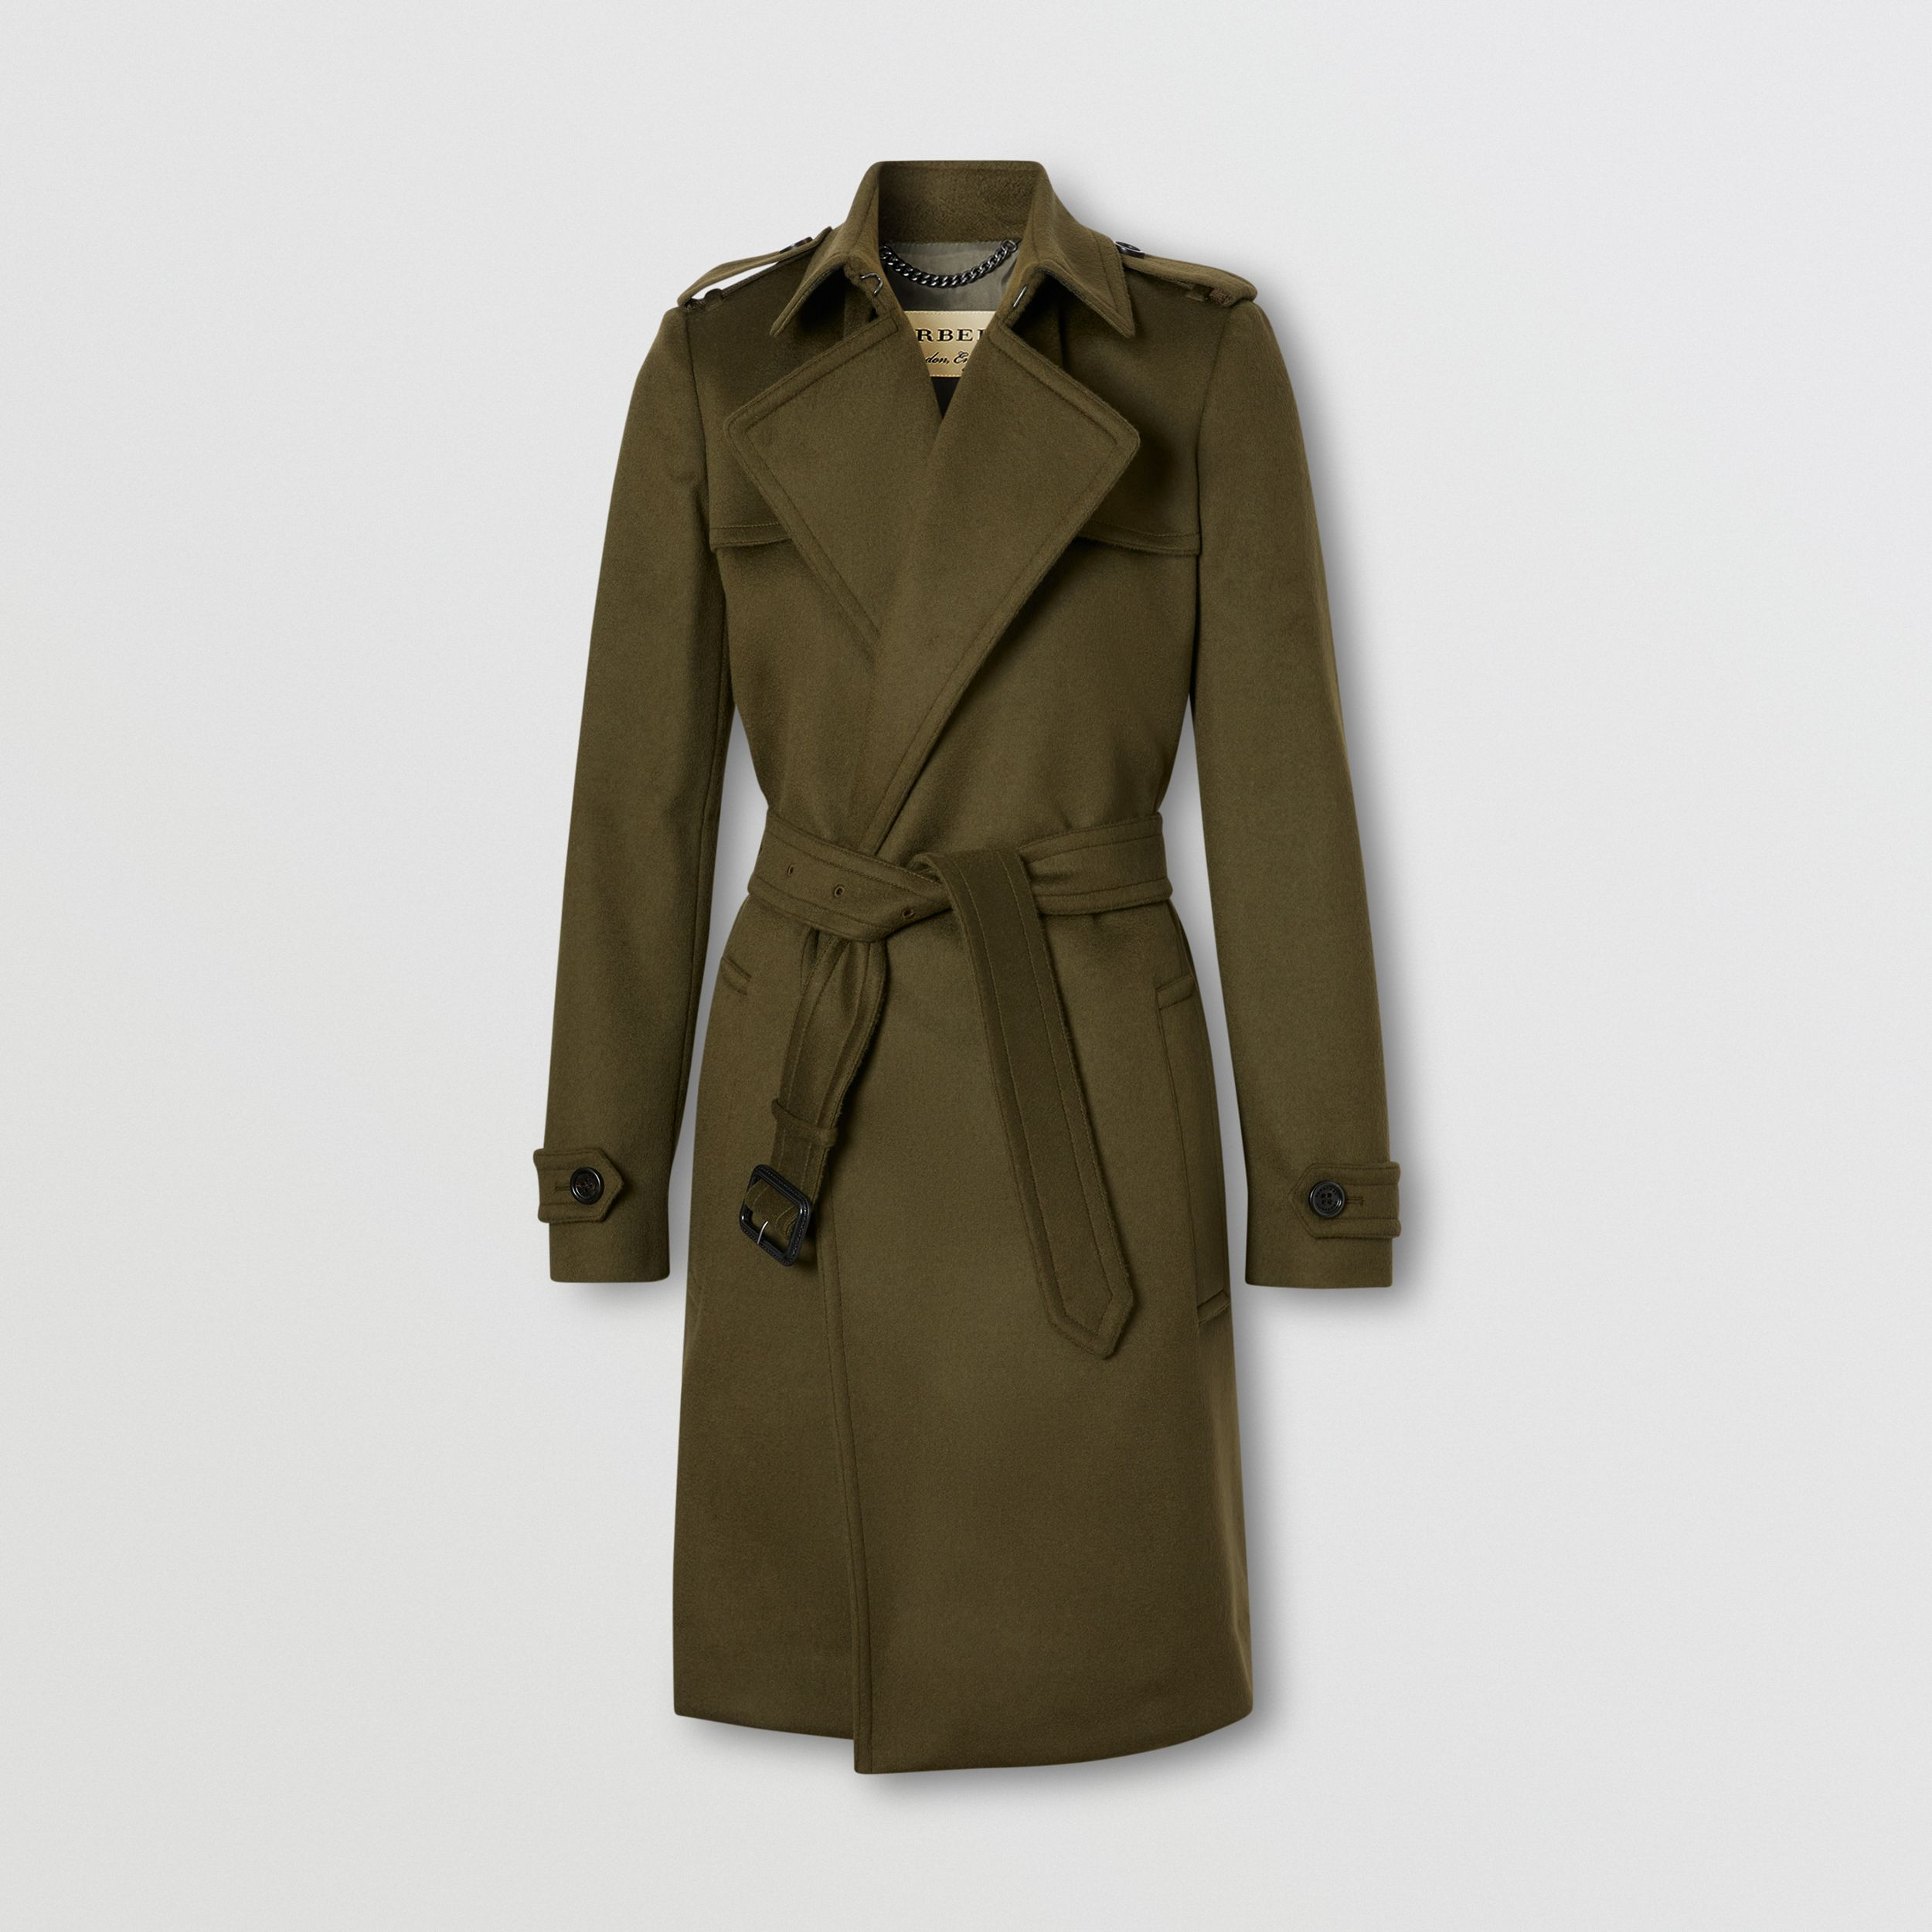 Wool Cashmere Wrap Coat in Dark Olive - Women | Burberry - 1